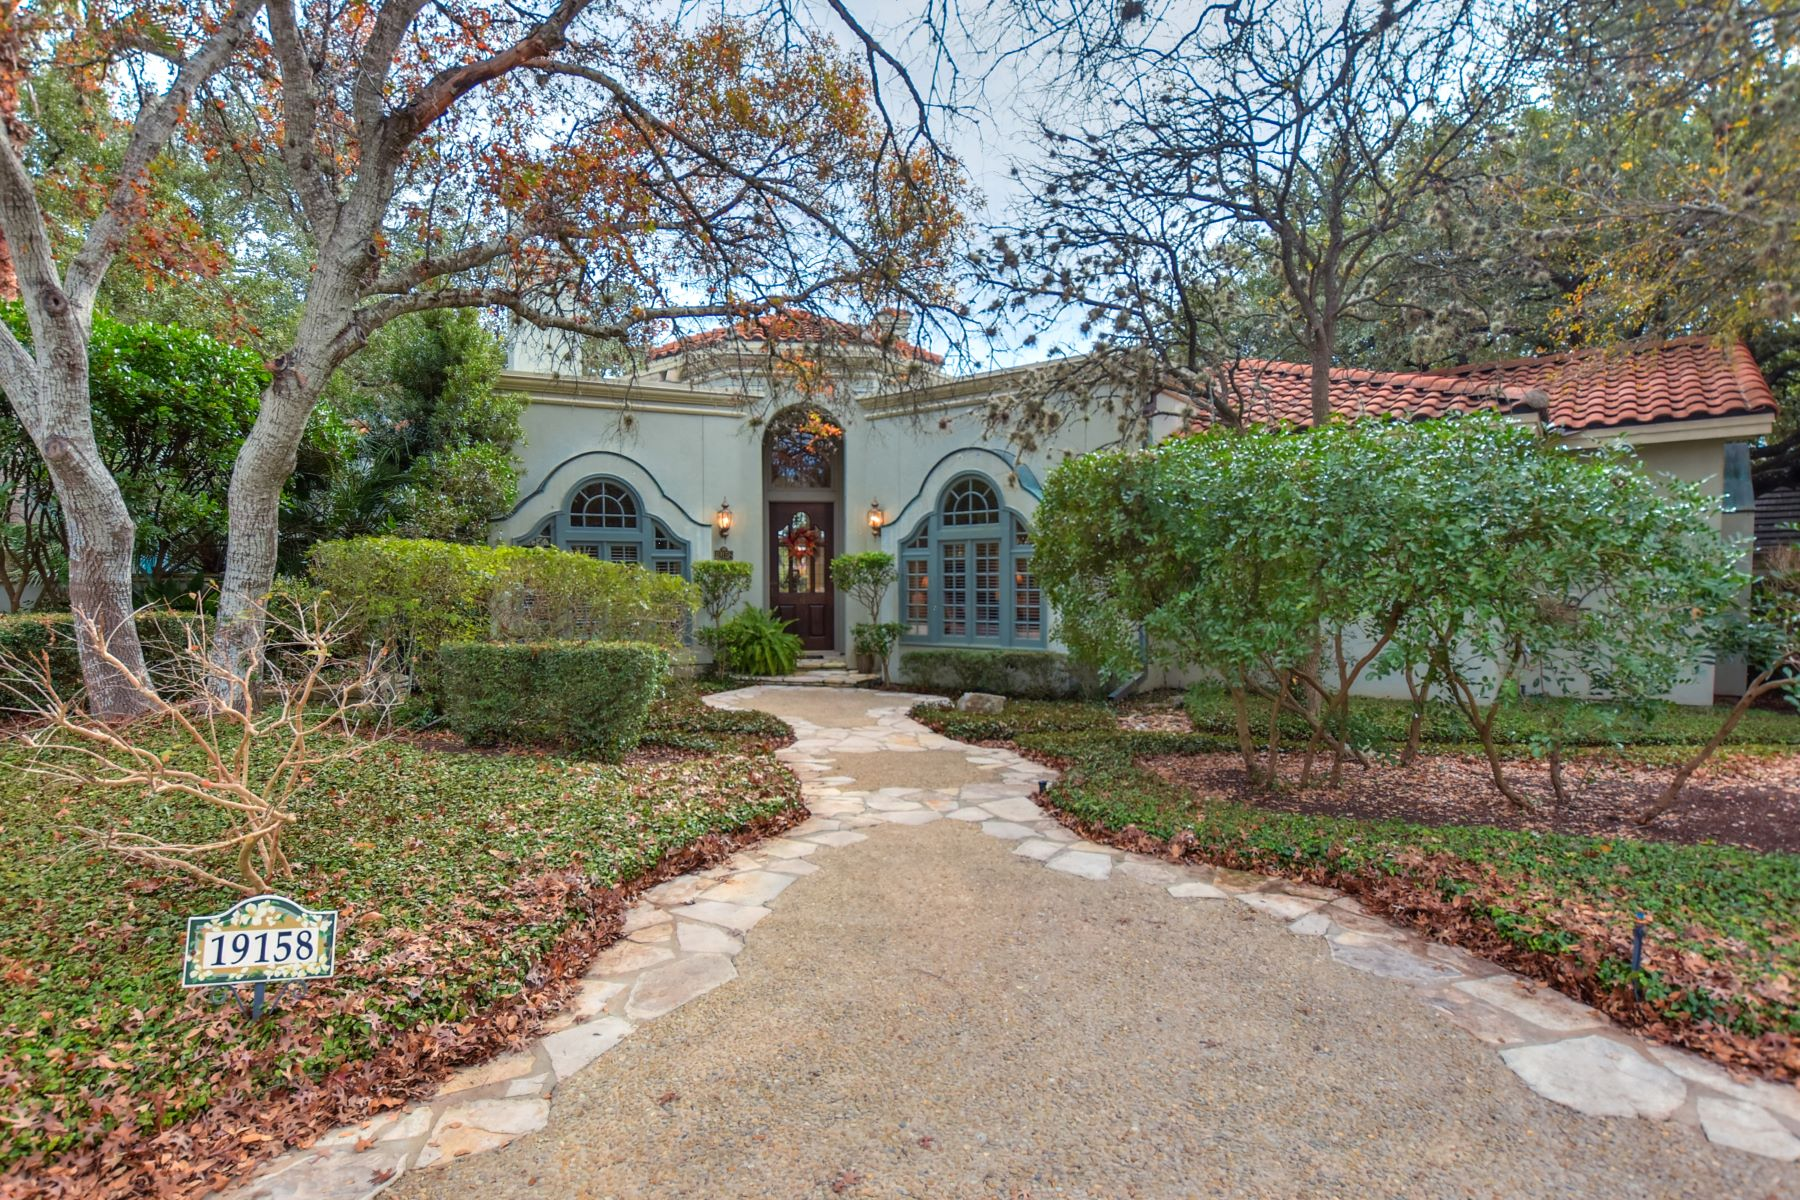 Single Family Home for Sale at Stunning Sonterra Golf Course Home 19158 Kristen Way San Antonio, Texas 78258 United States